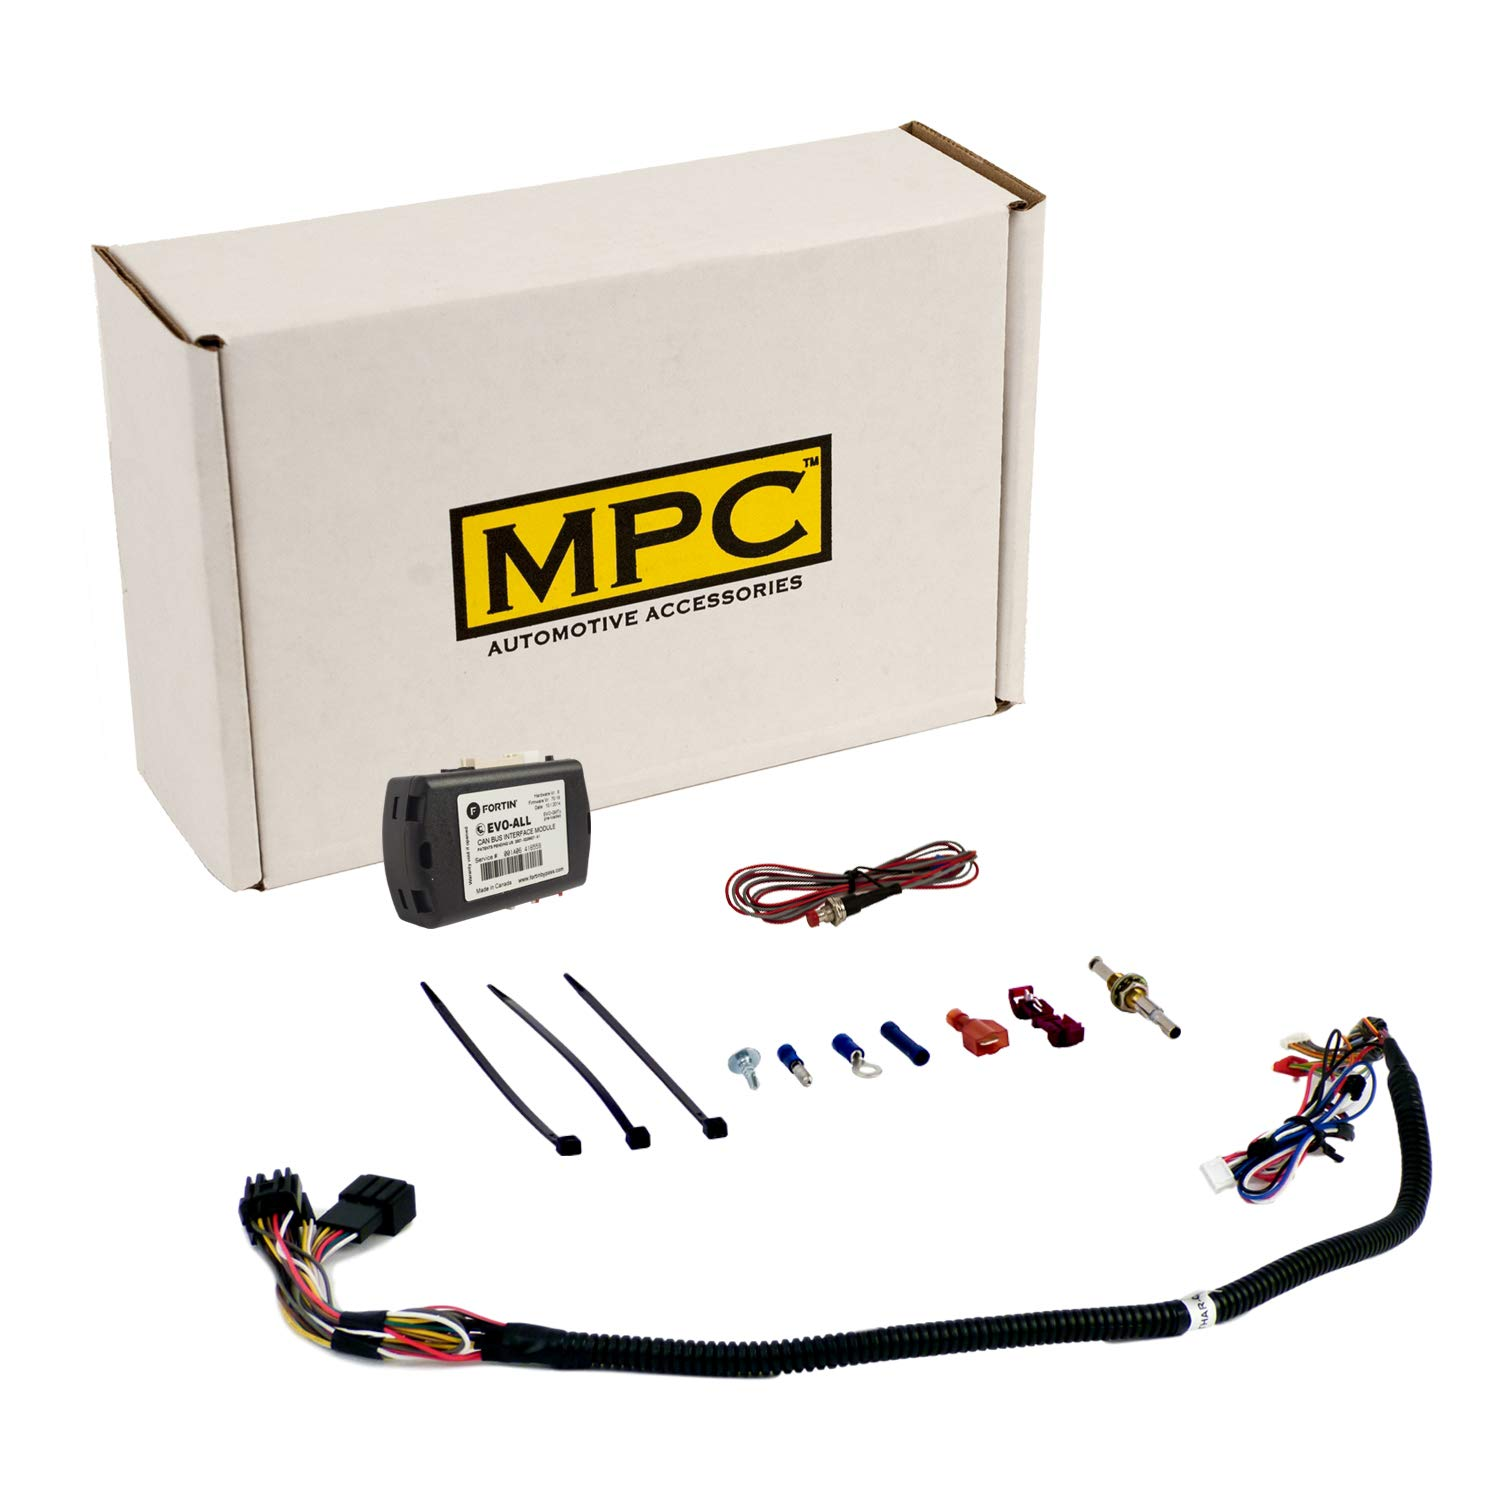 MPC Complete Remote Start for 2007-2013 Chevrolet Silverado 1500 Quick-N-Easy Firmware Preloaded Plug-N-Play T-Harness